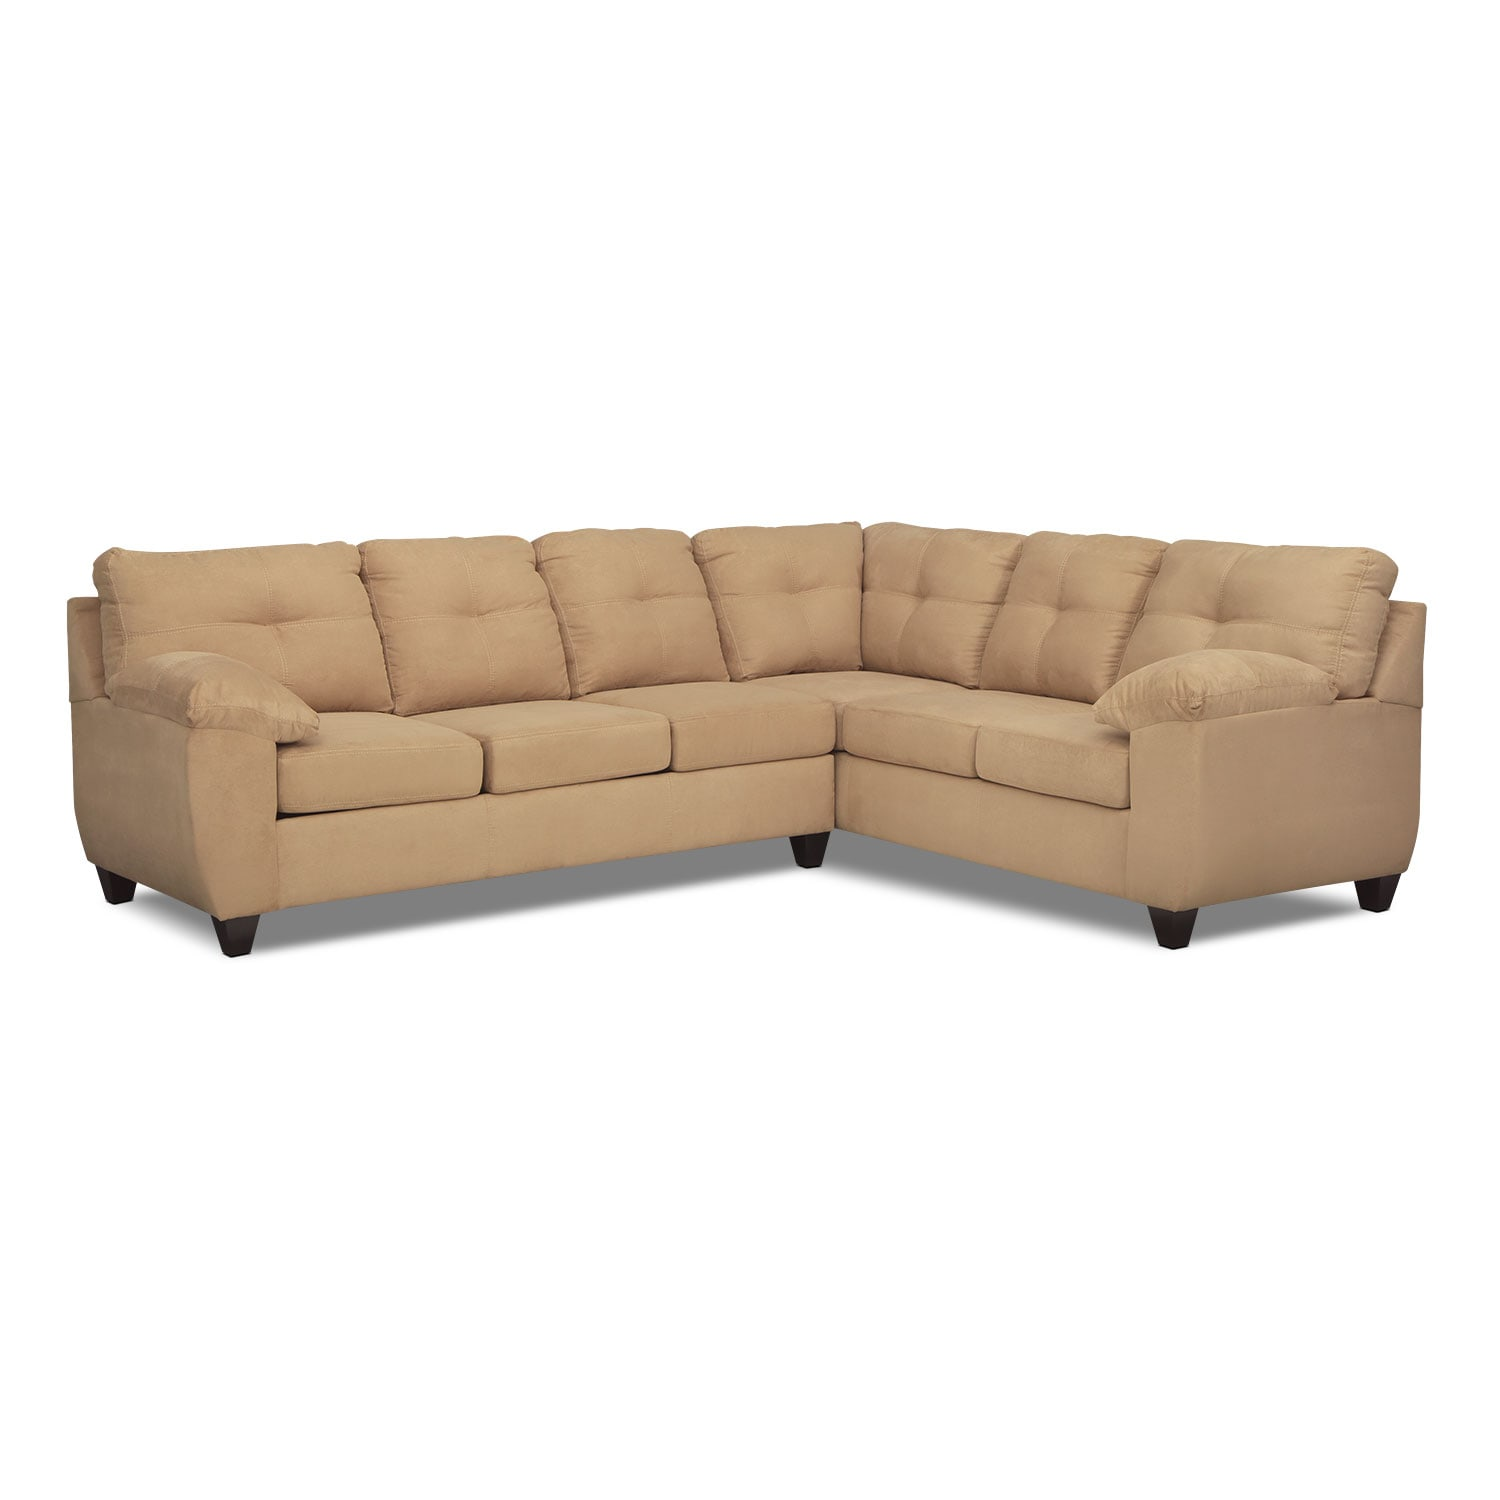 Living Room Furniture - Rialto 2-Piece Sectional with Left-Facing Memory Foam Sleeper - Camel